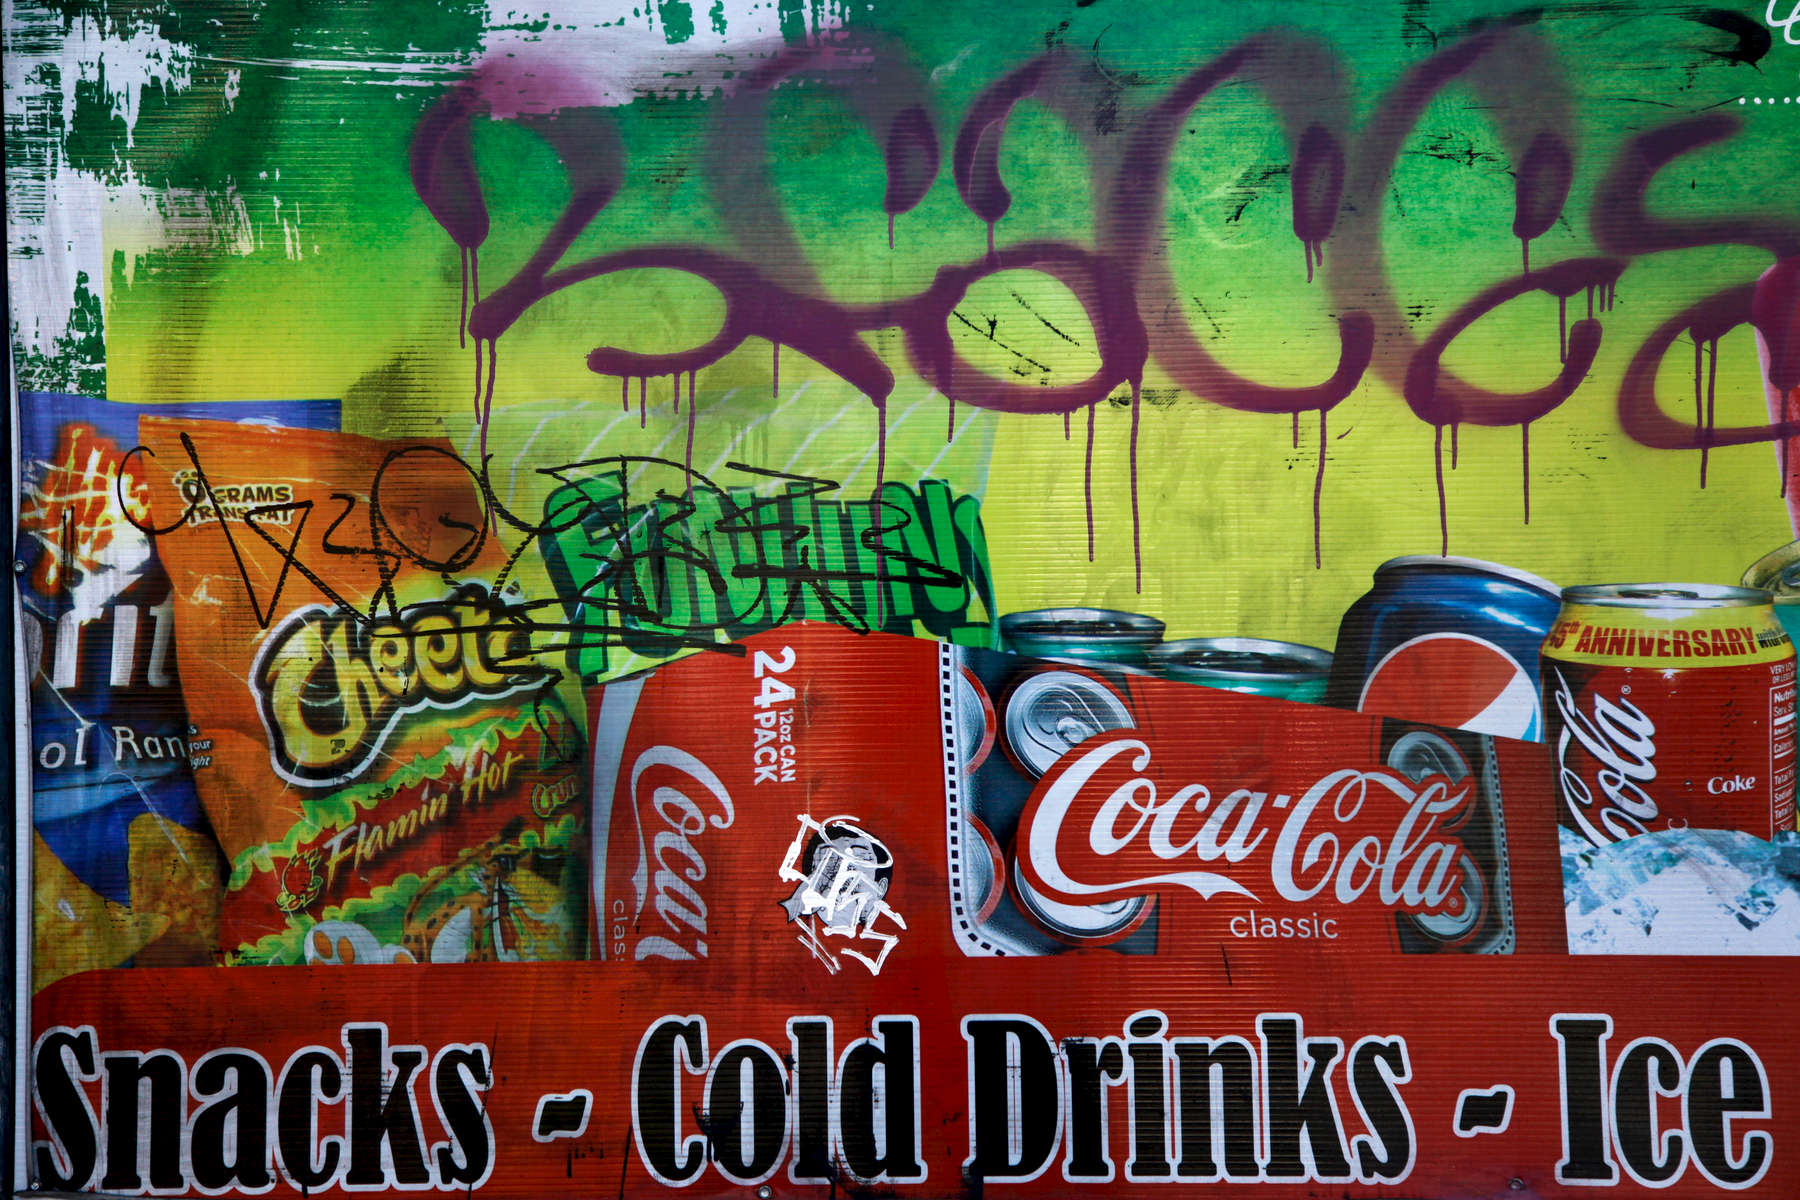 An advertisement on the side of a corner market in West Oakland. Much of Oakland is considered a food desert: a low-income area where most residents live a mile or more away from a  supermarket. Many residents without access to transportation are forced to buy their food from nearby liquor stores and convenience stores. (Photo by Preston Gannaway © 2016)